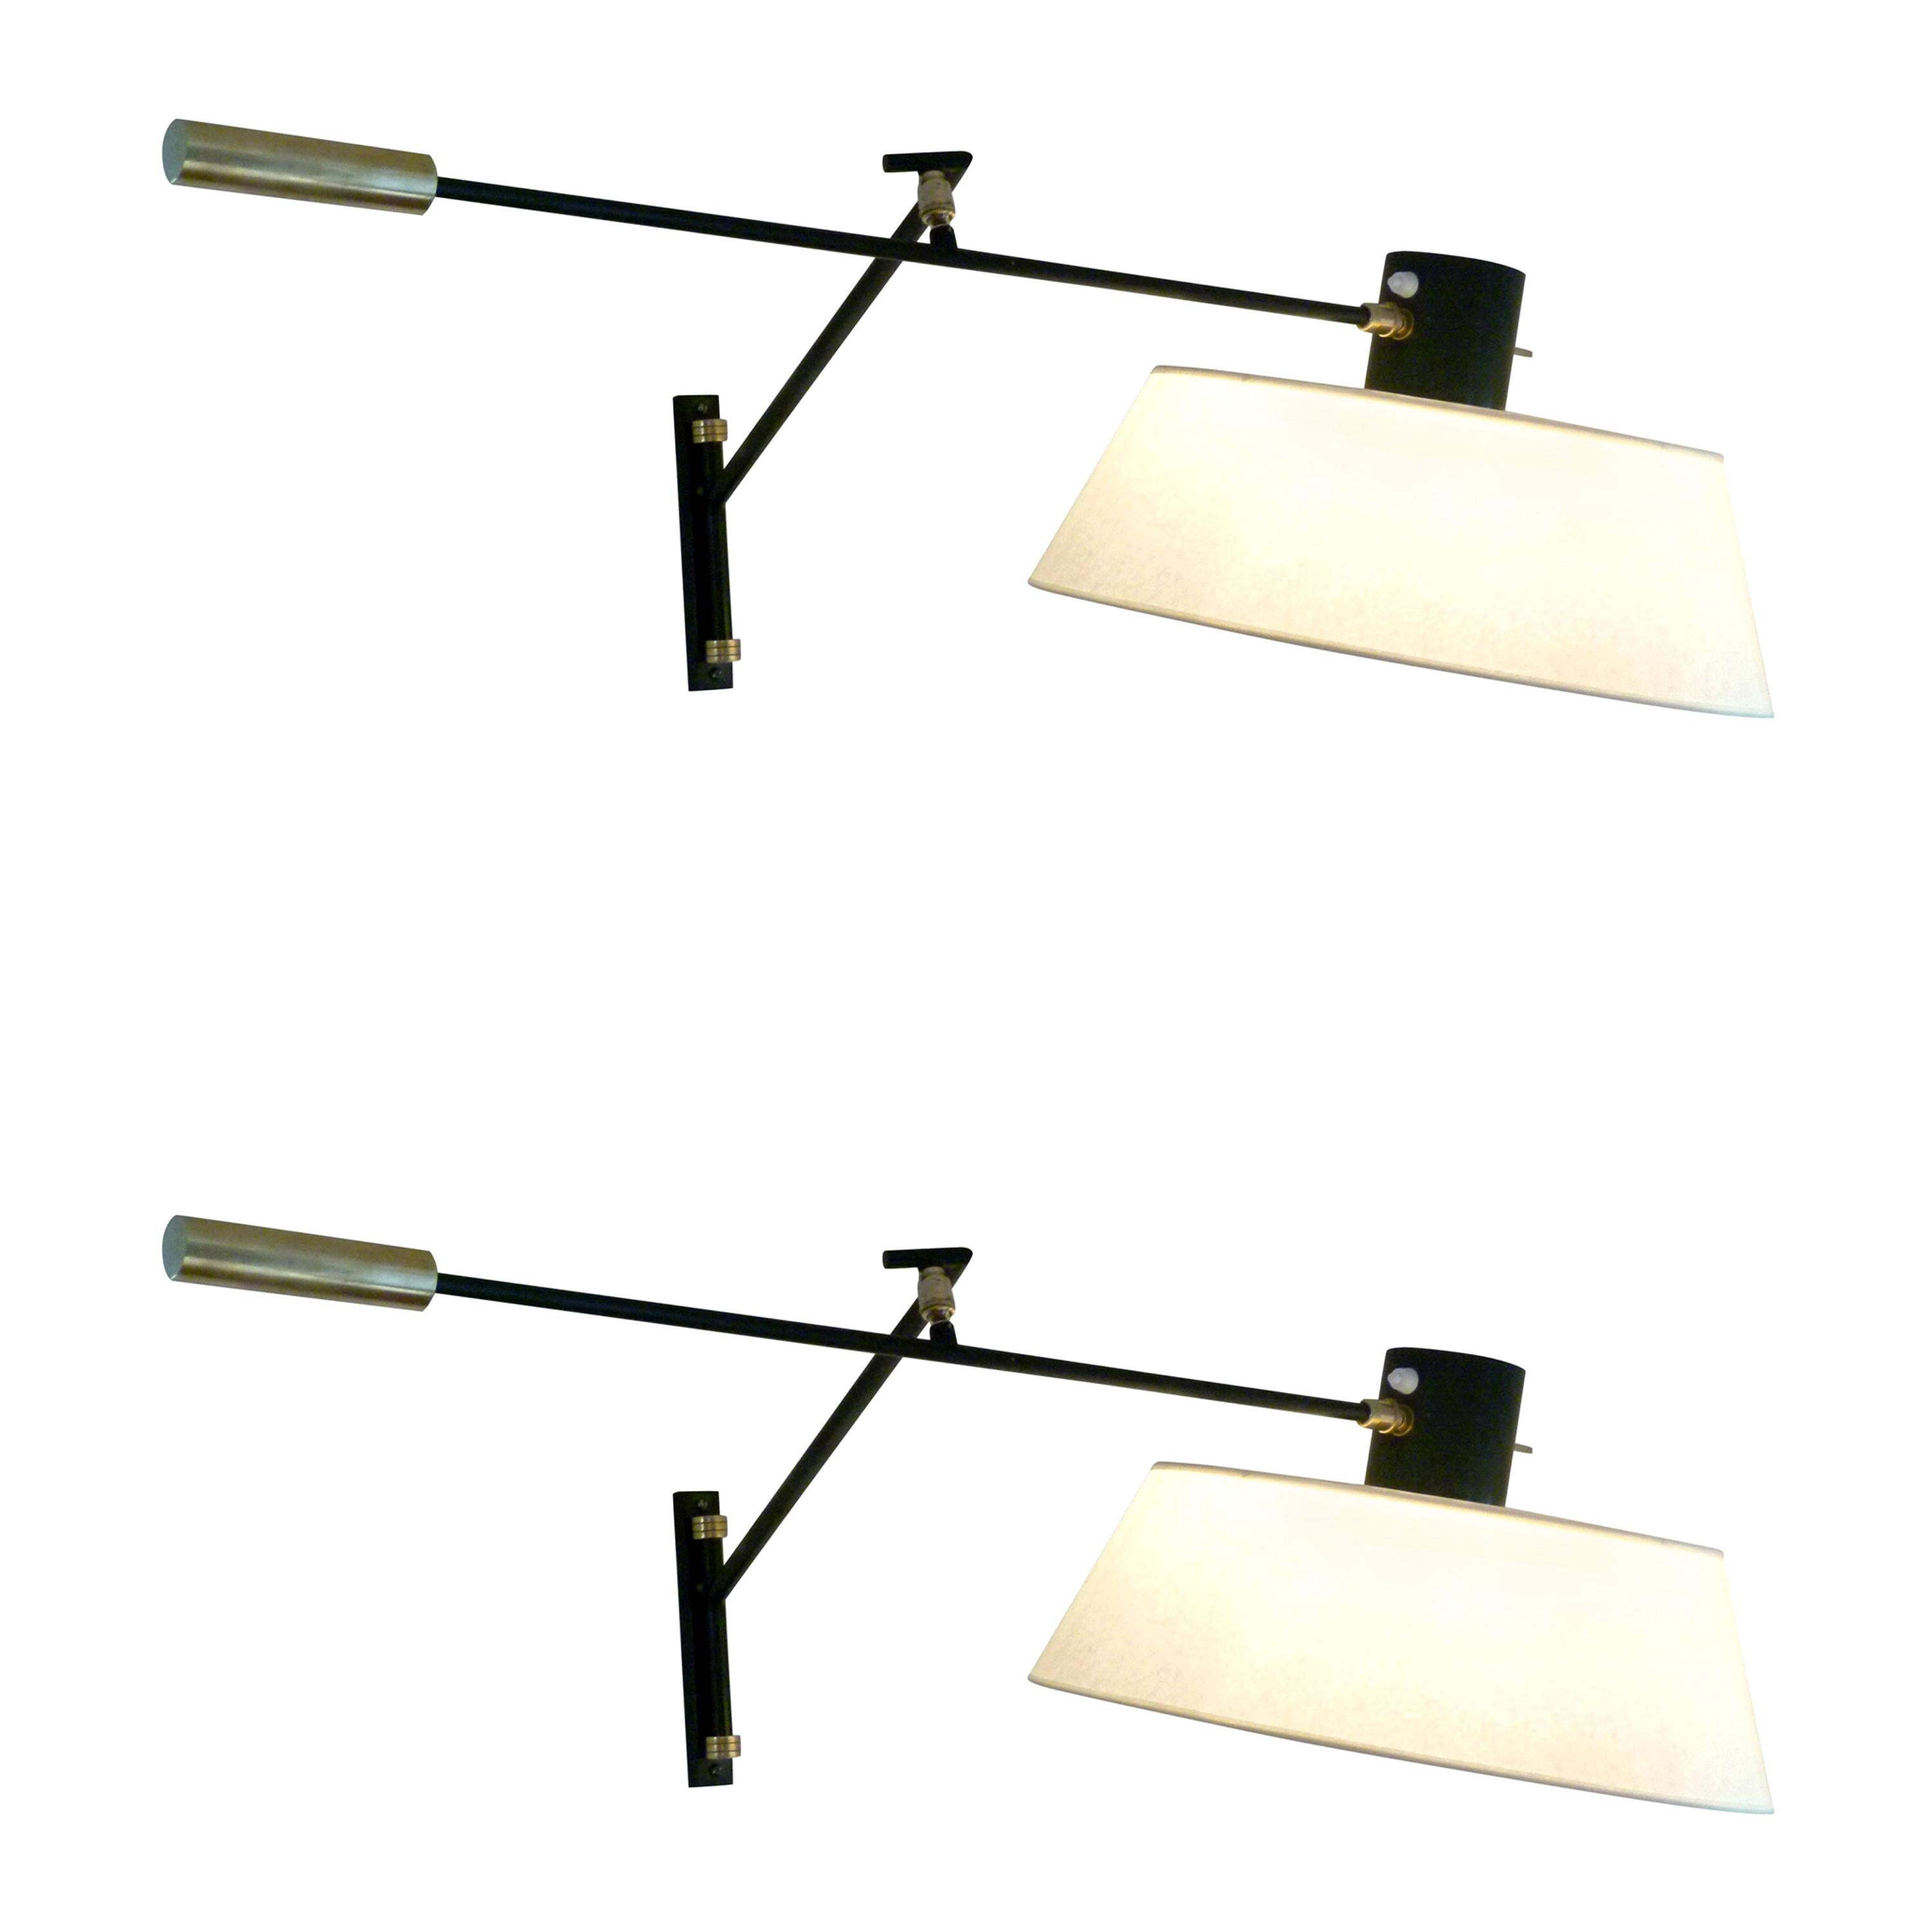 Pair of 1950s Articulated Sconce by Maison Lunel